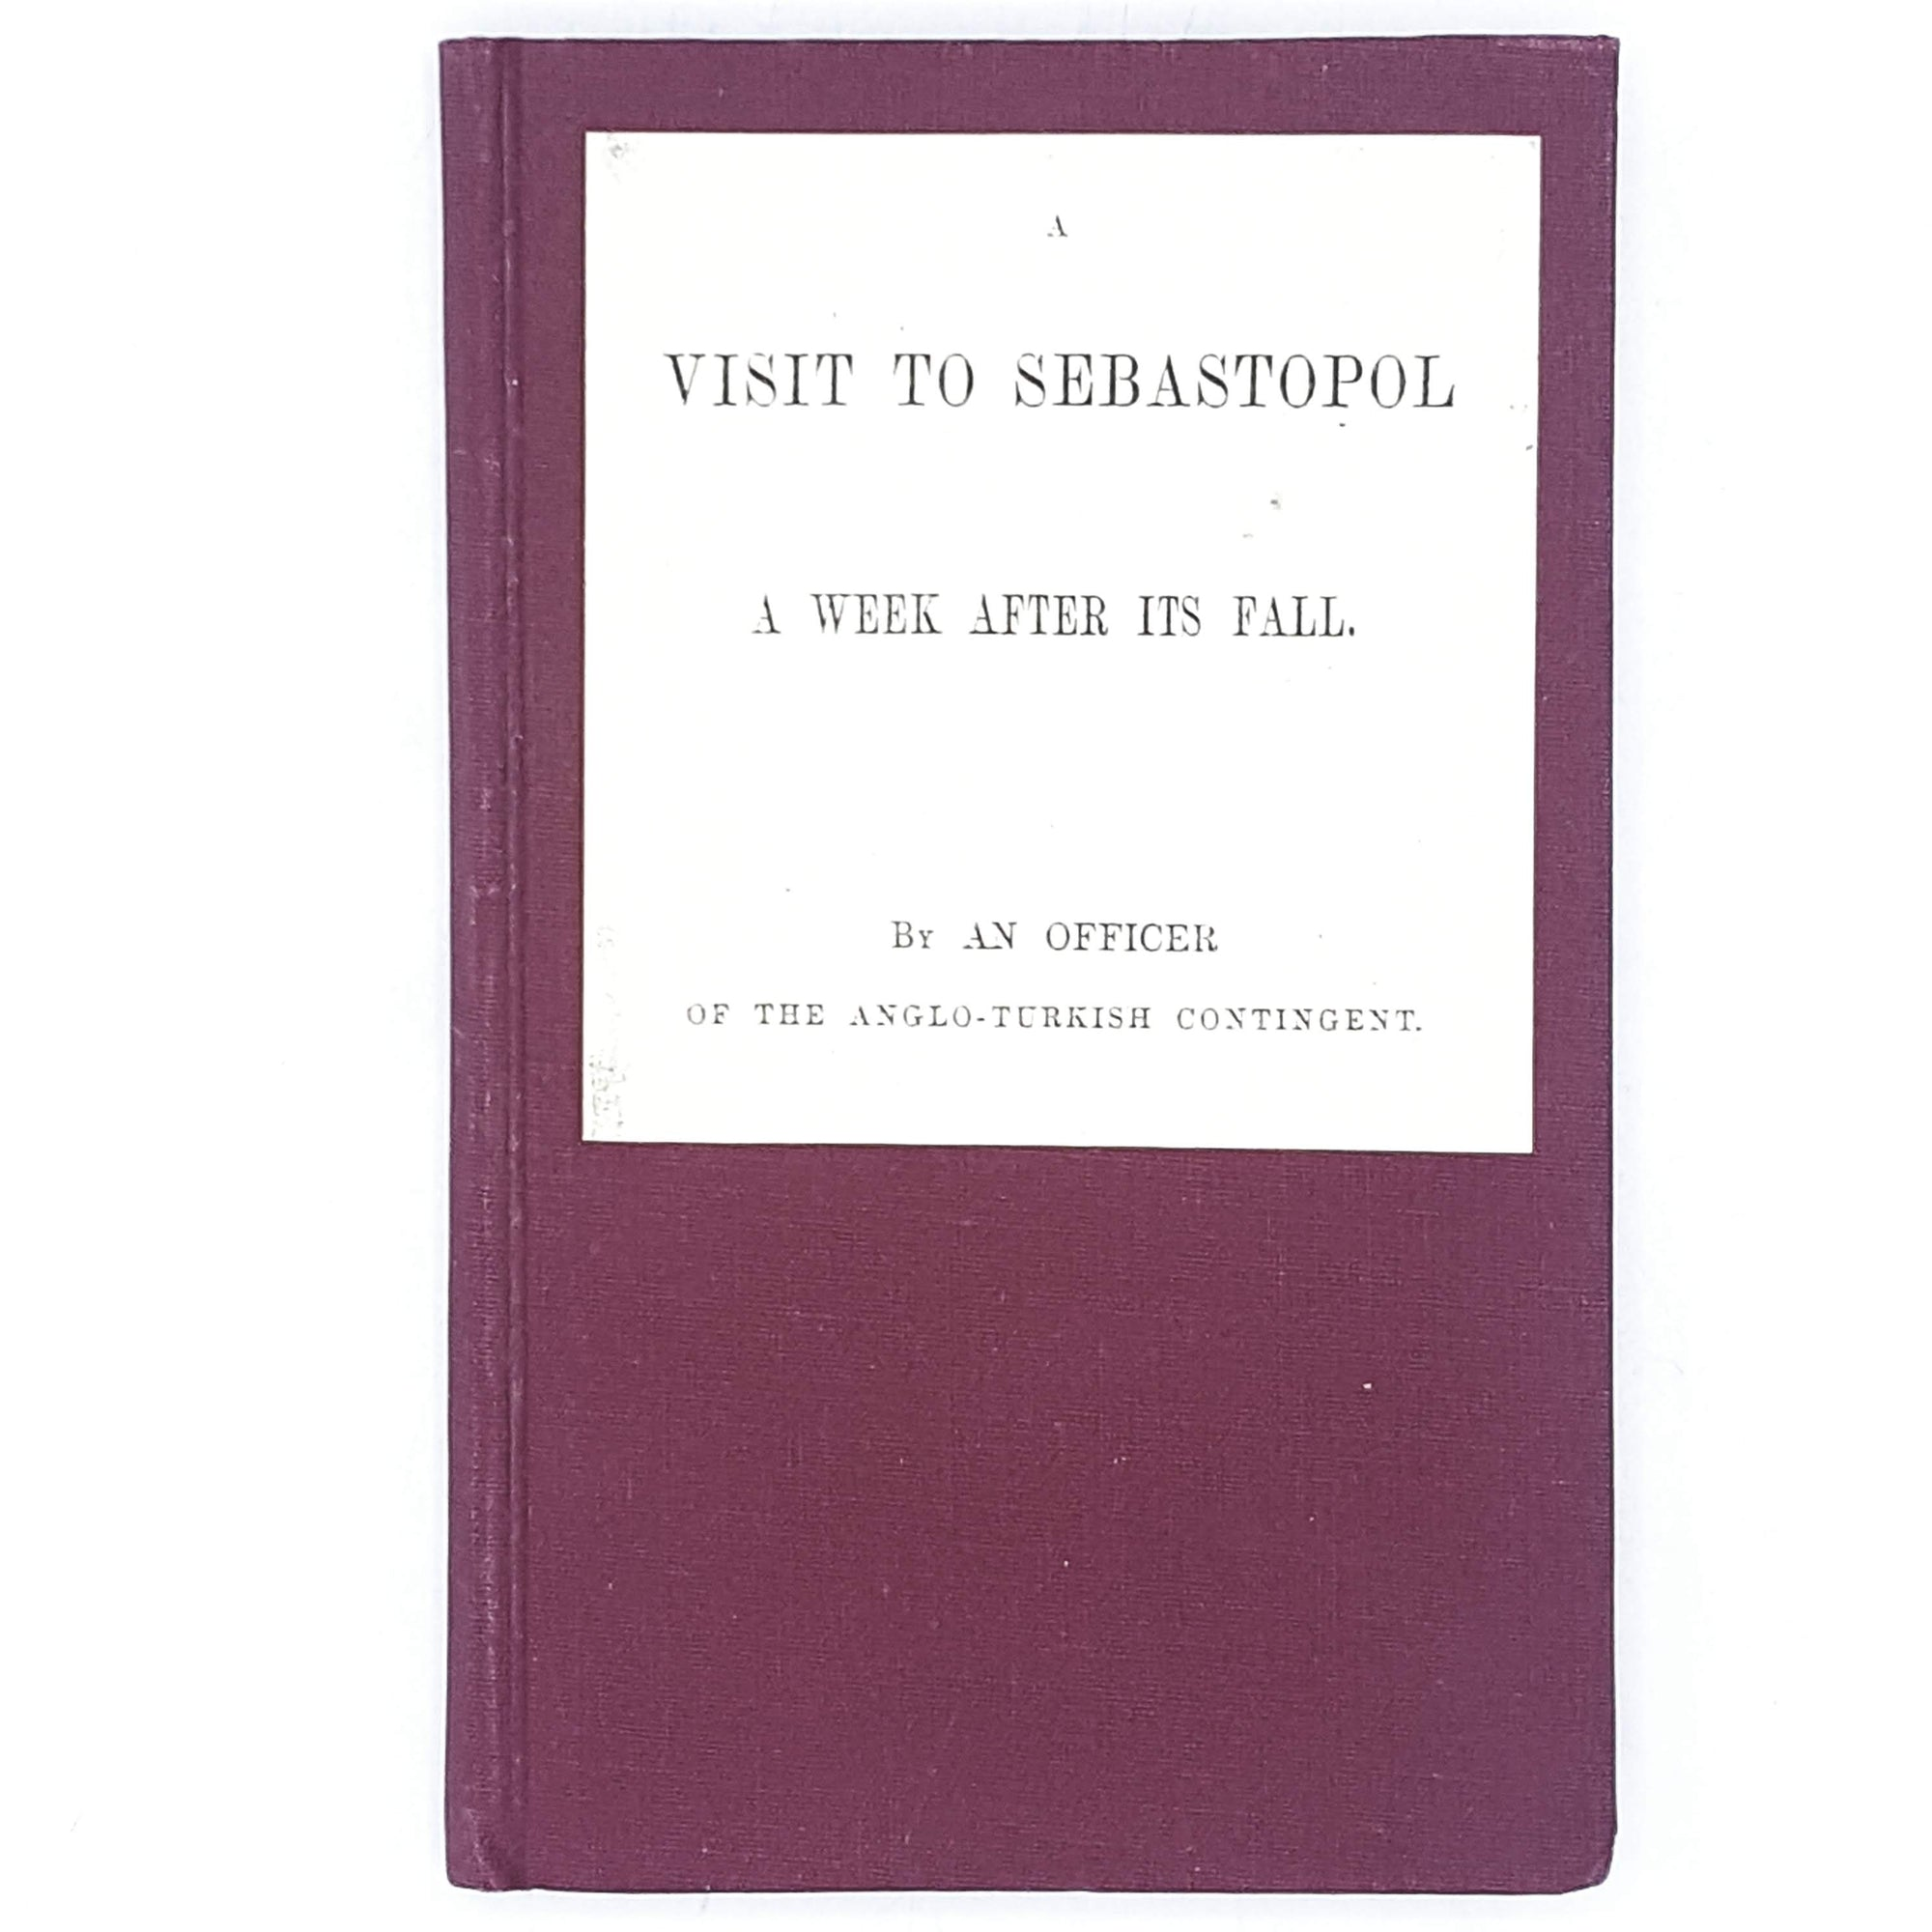 A Visit to Sebastopol A Week After its Fall 1856